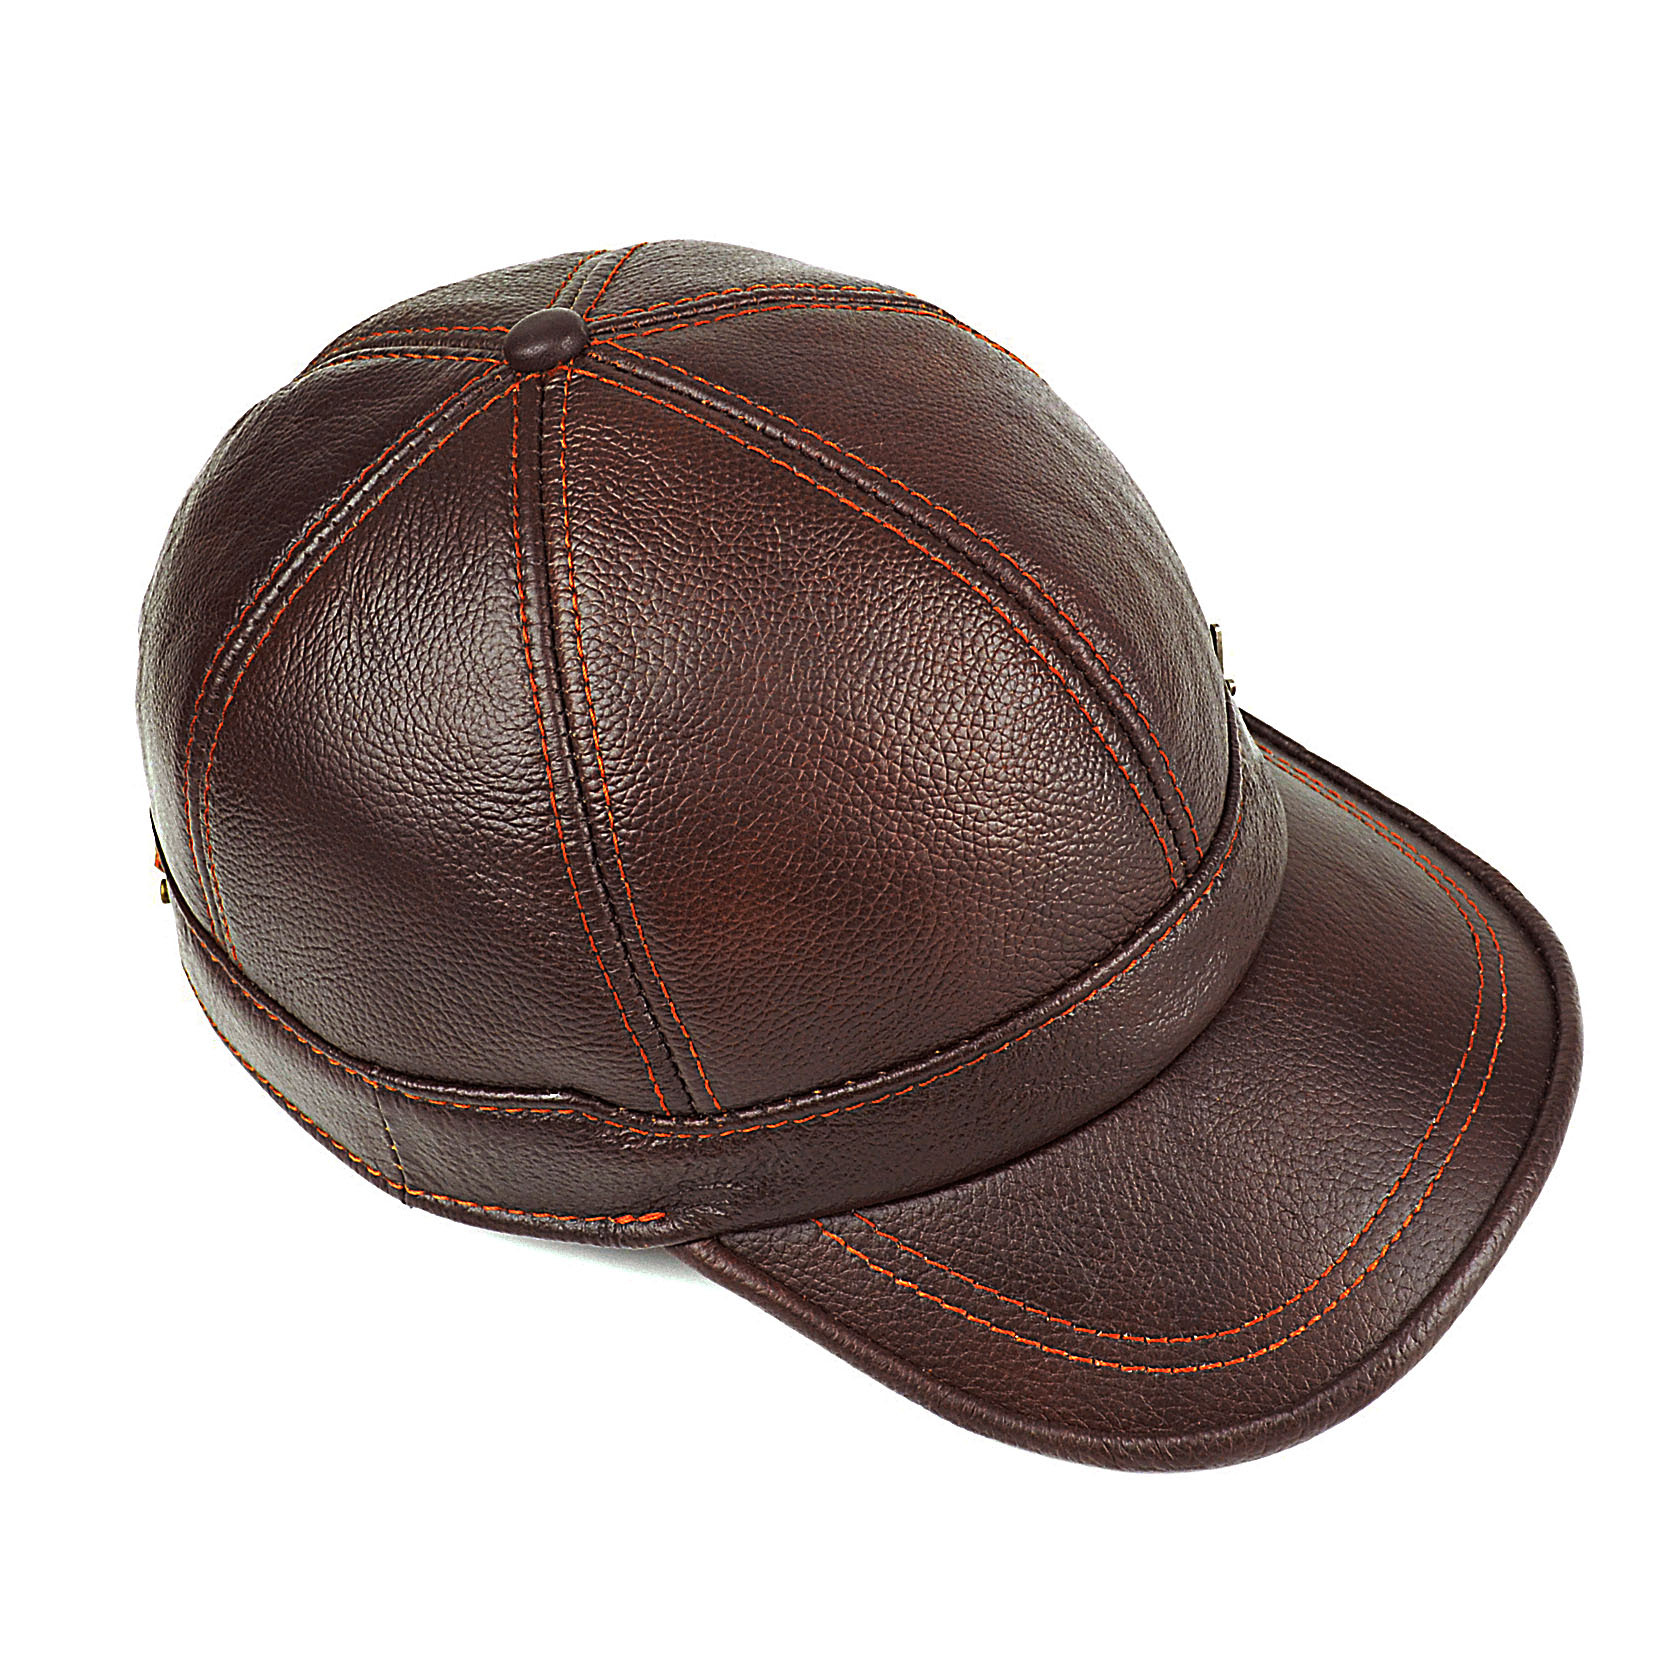 Adult New Genuine Leather Hat Men 39 s Warm Genuine Leather Baseball Cap Male Winter Outdoor Ear Protection Cap Leather Hat B 8385 in Men 39 s Baseball Caps from Apparel Accessories